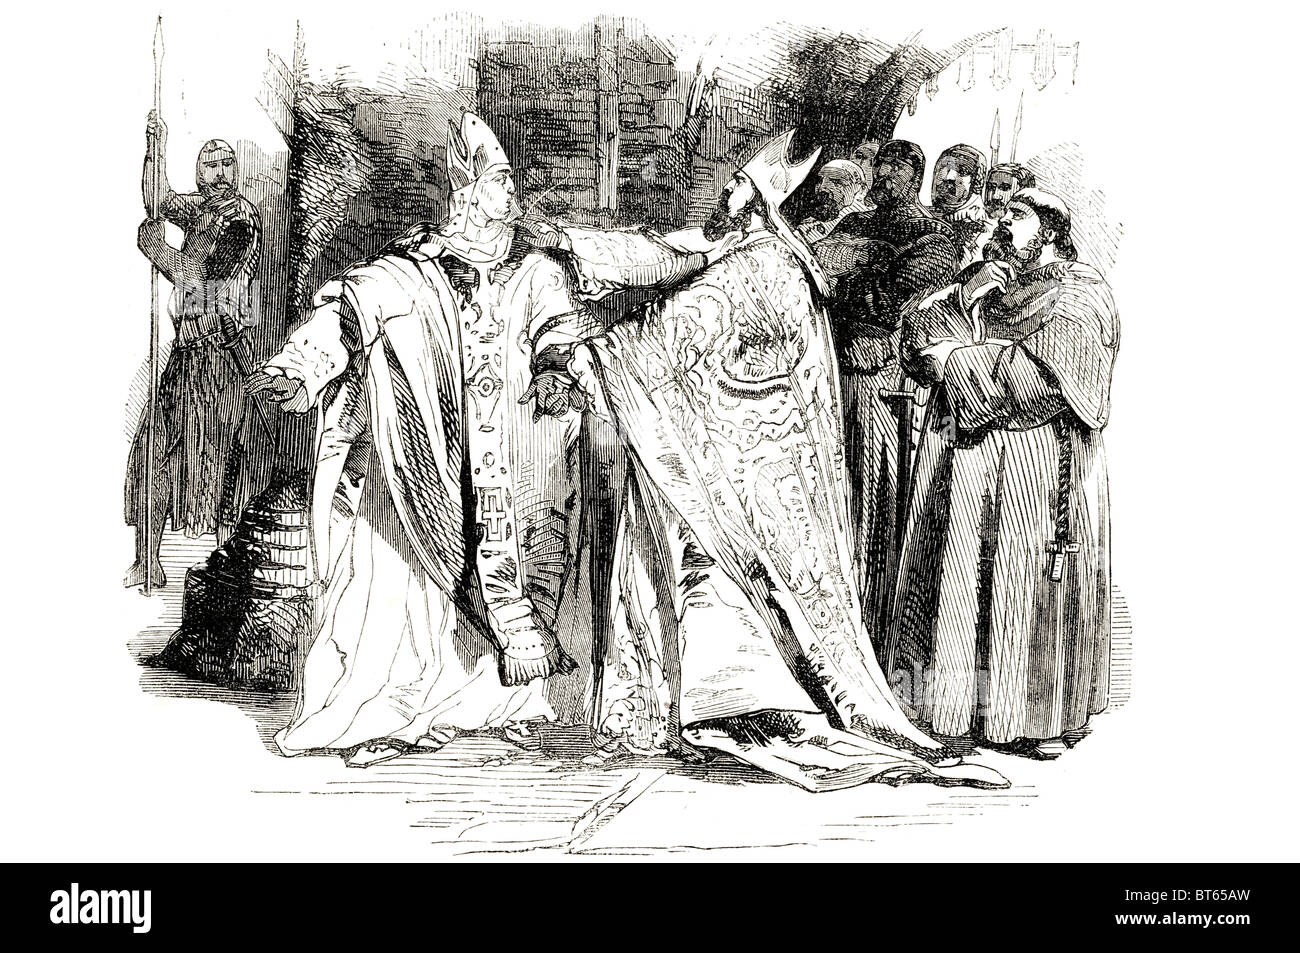 William de Longchamp chancellor arresting hugh pudsey bishop of durham died  1197 or Longchamps, medieval Lord Chancellor, Chief